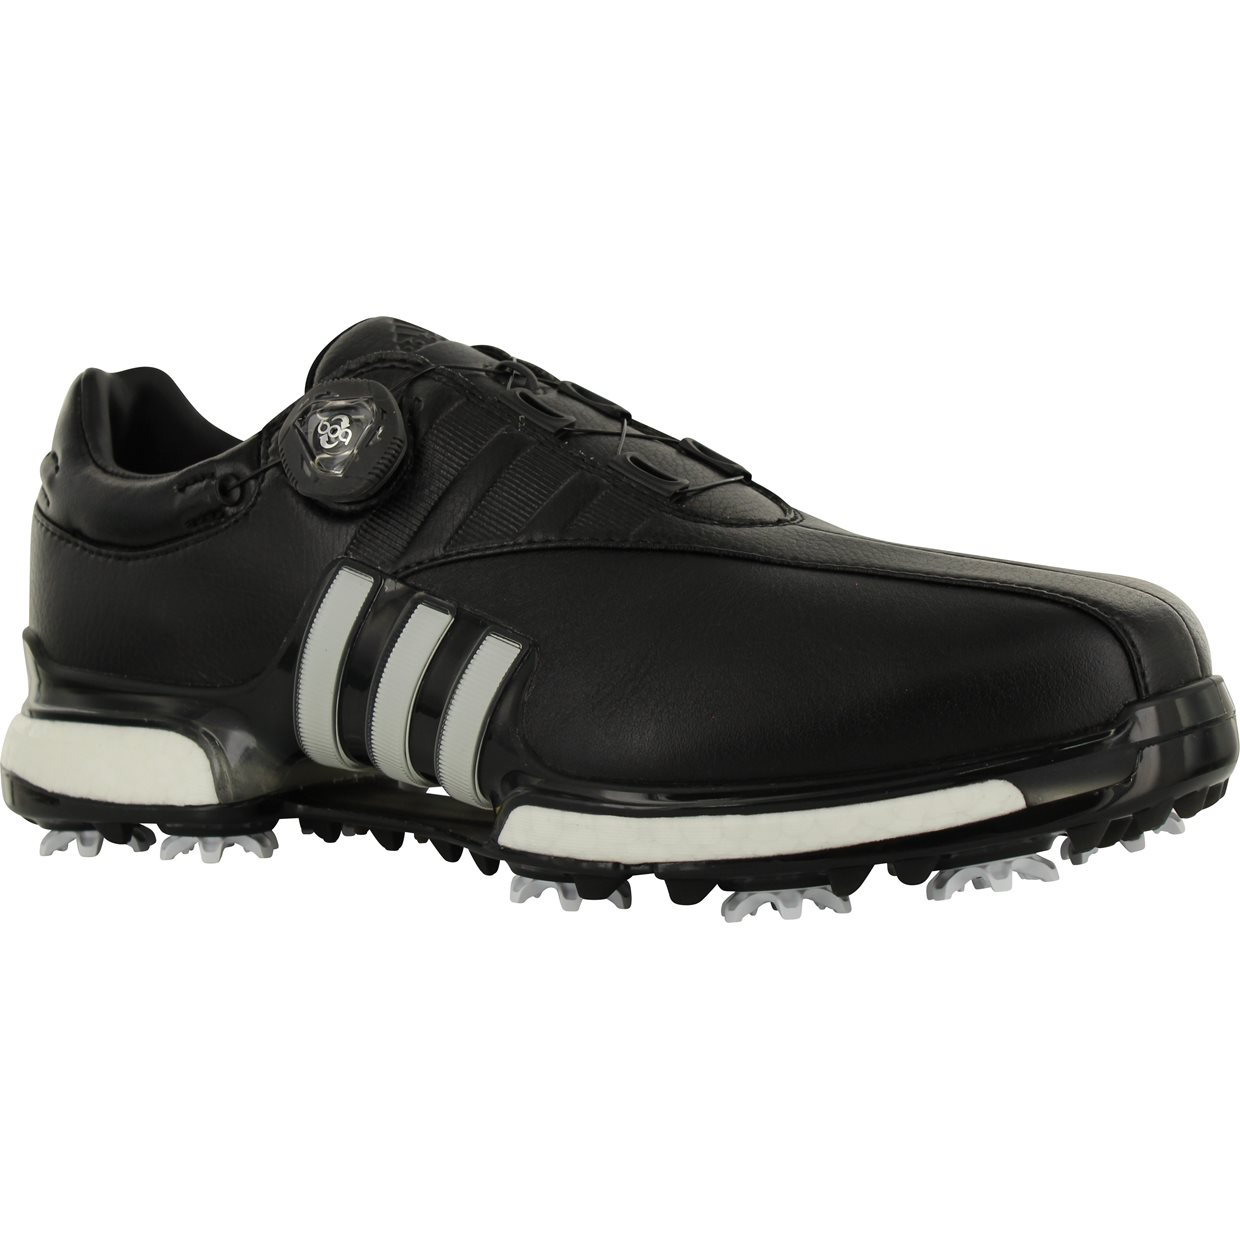 2351e3470f8b Adidas Tour360 EQT Boa Golf Shoe in Black White Black